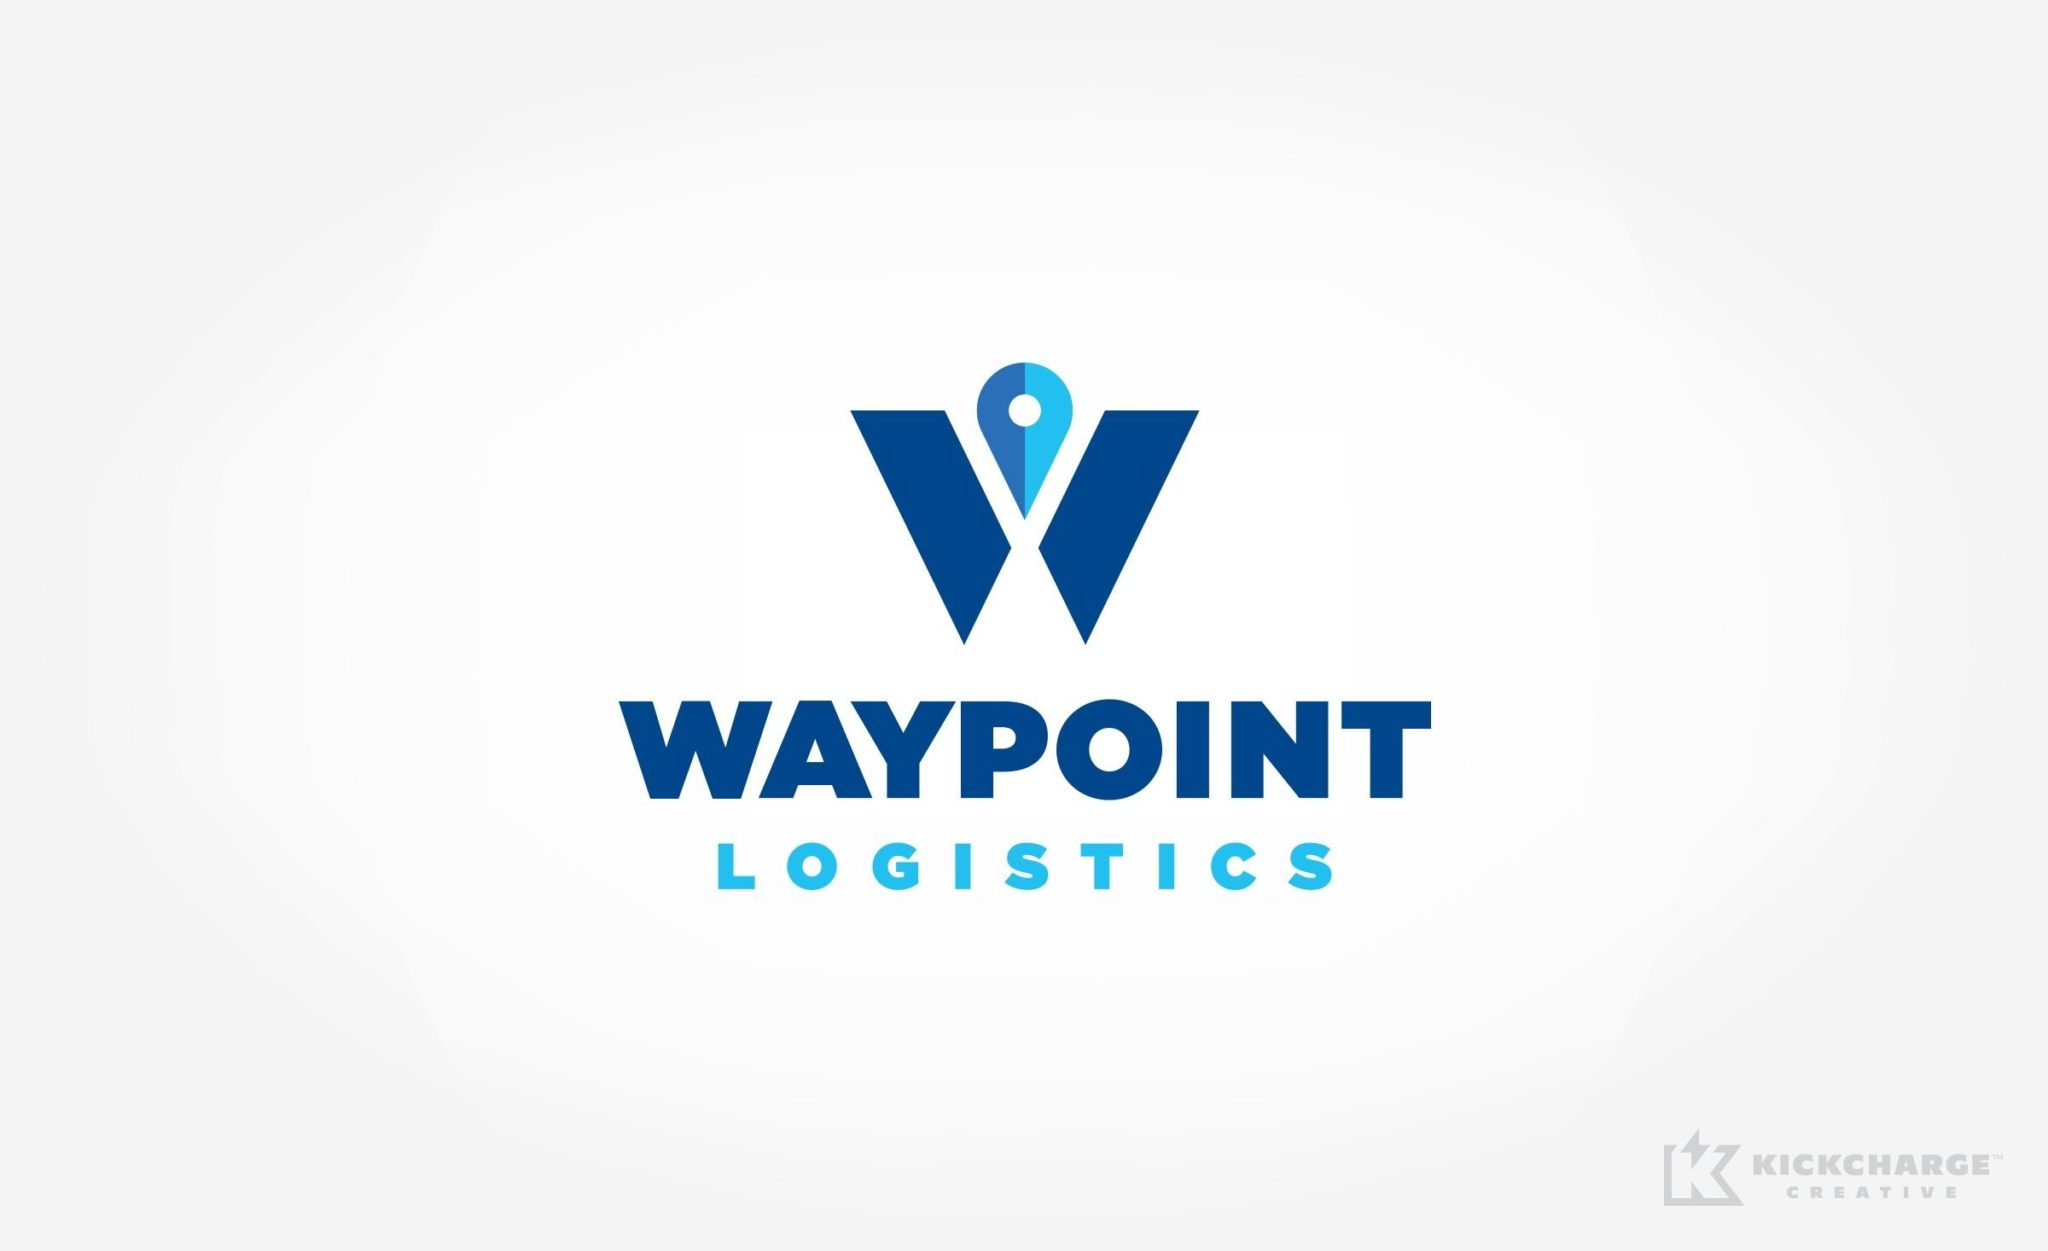 Logo design for Waypoint Logistics, a storage & distribution company located in Illinois.